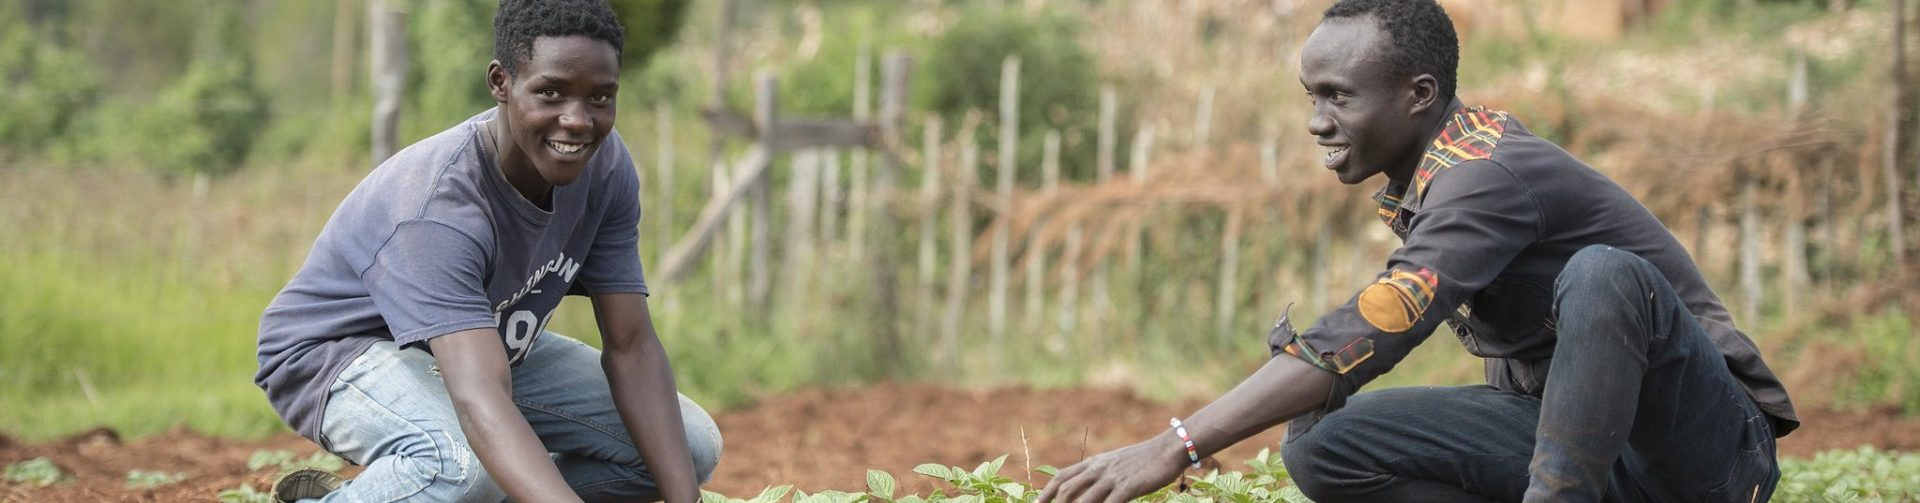 Why is climate change a youth issue? New IFPRI/CGIAR brief explains